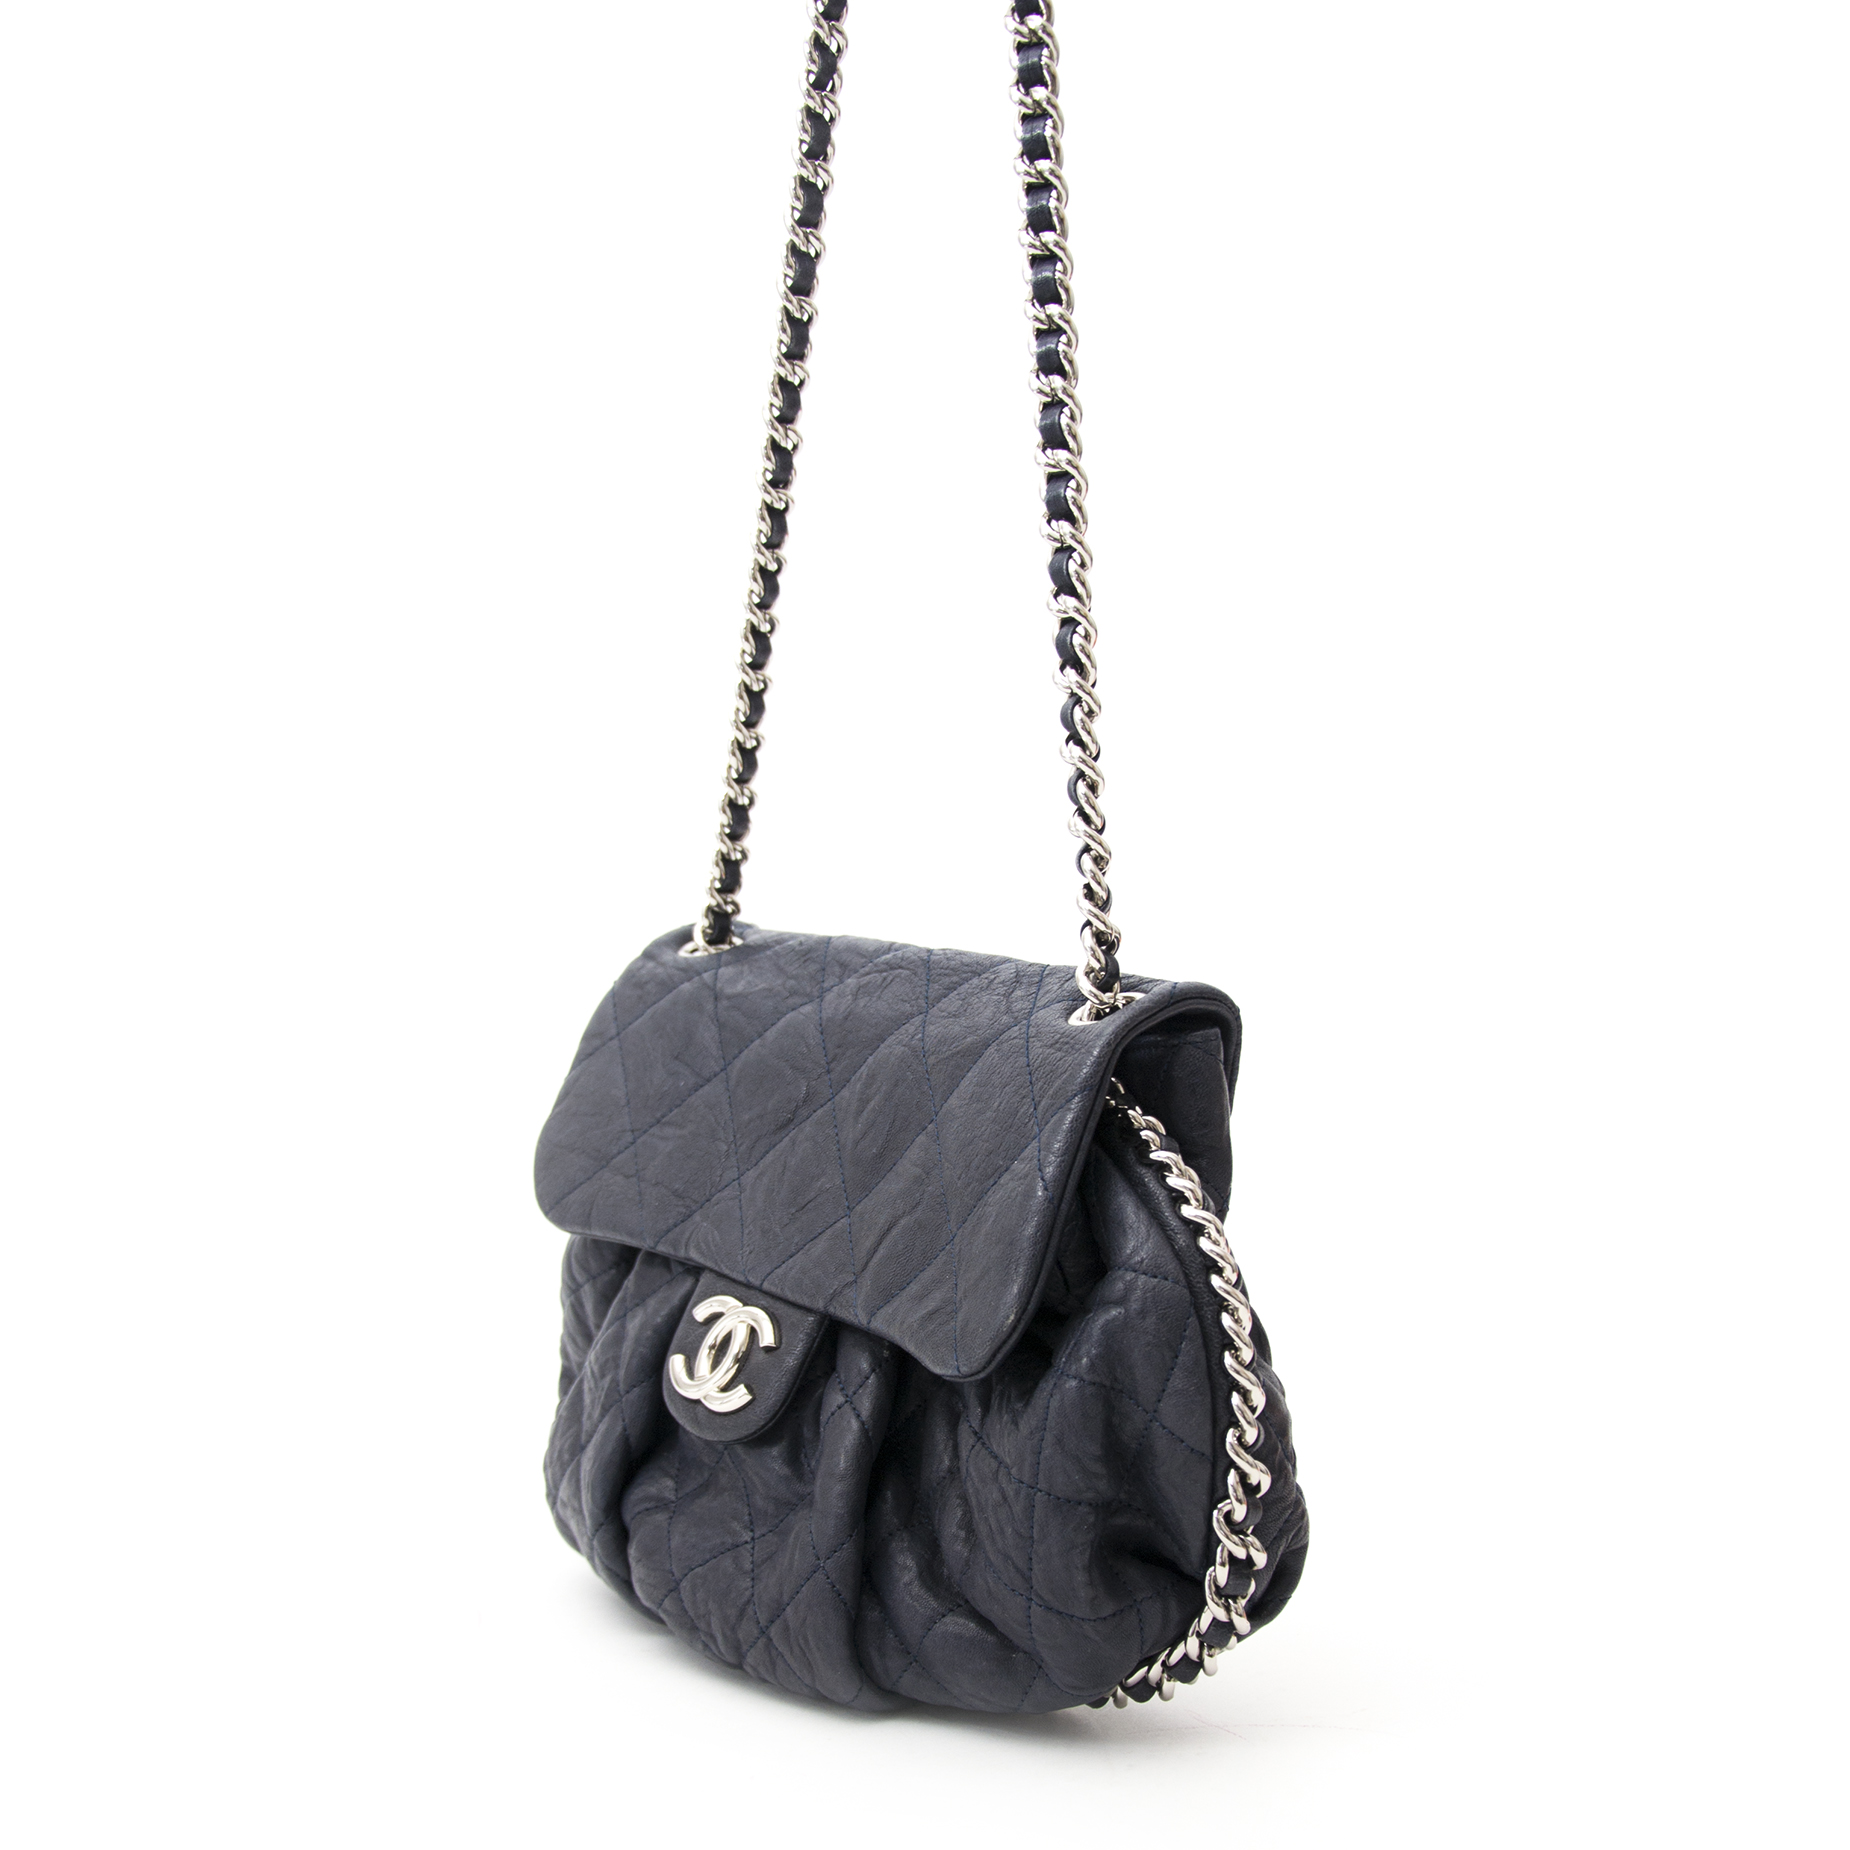 Chanel Blue Grey Chain Wrap Around Flap Bag 2014 collection enligne pour le meilleur prix